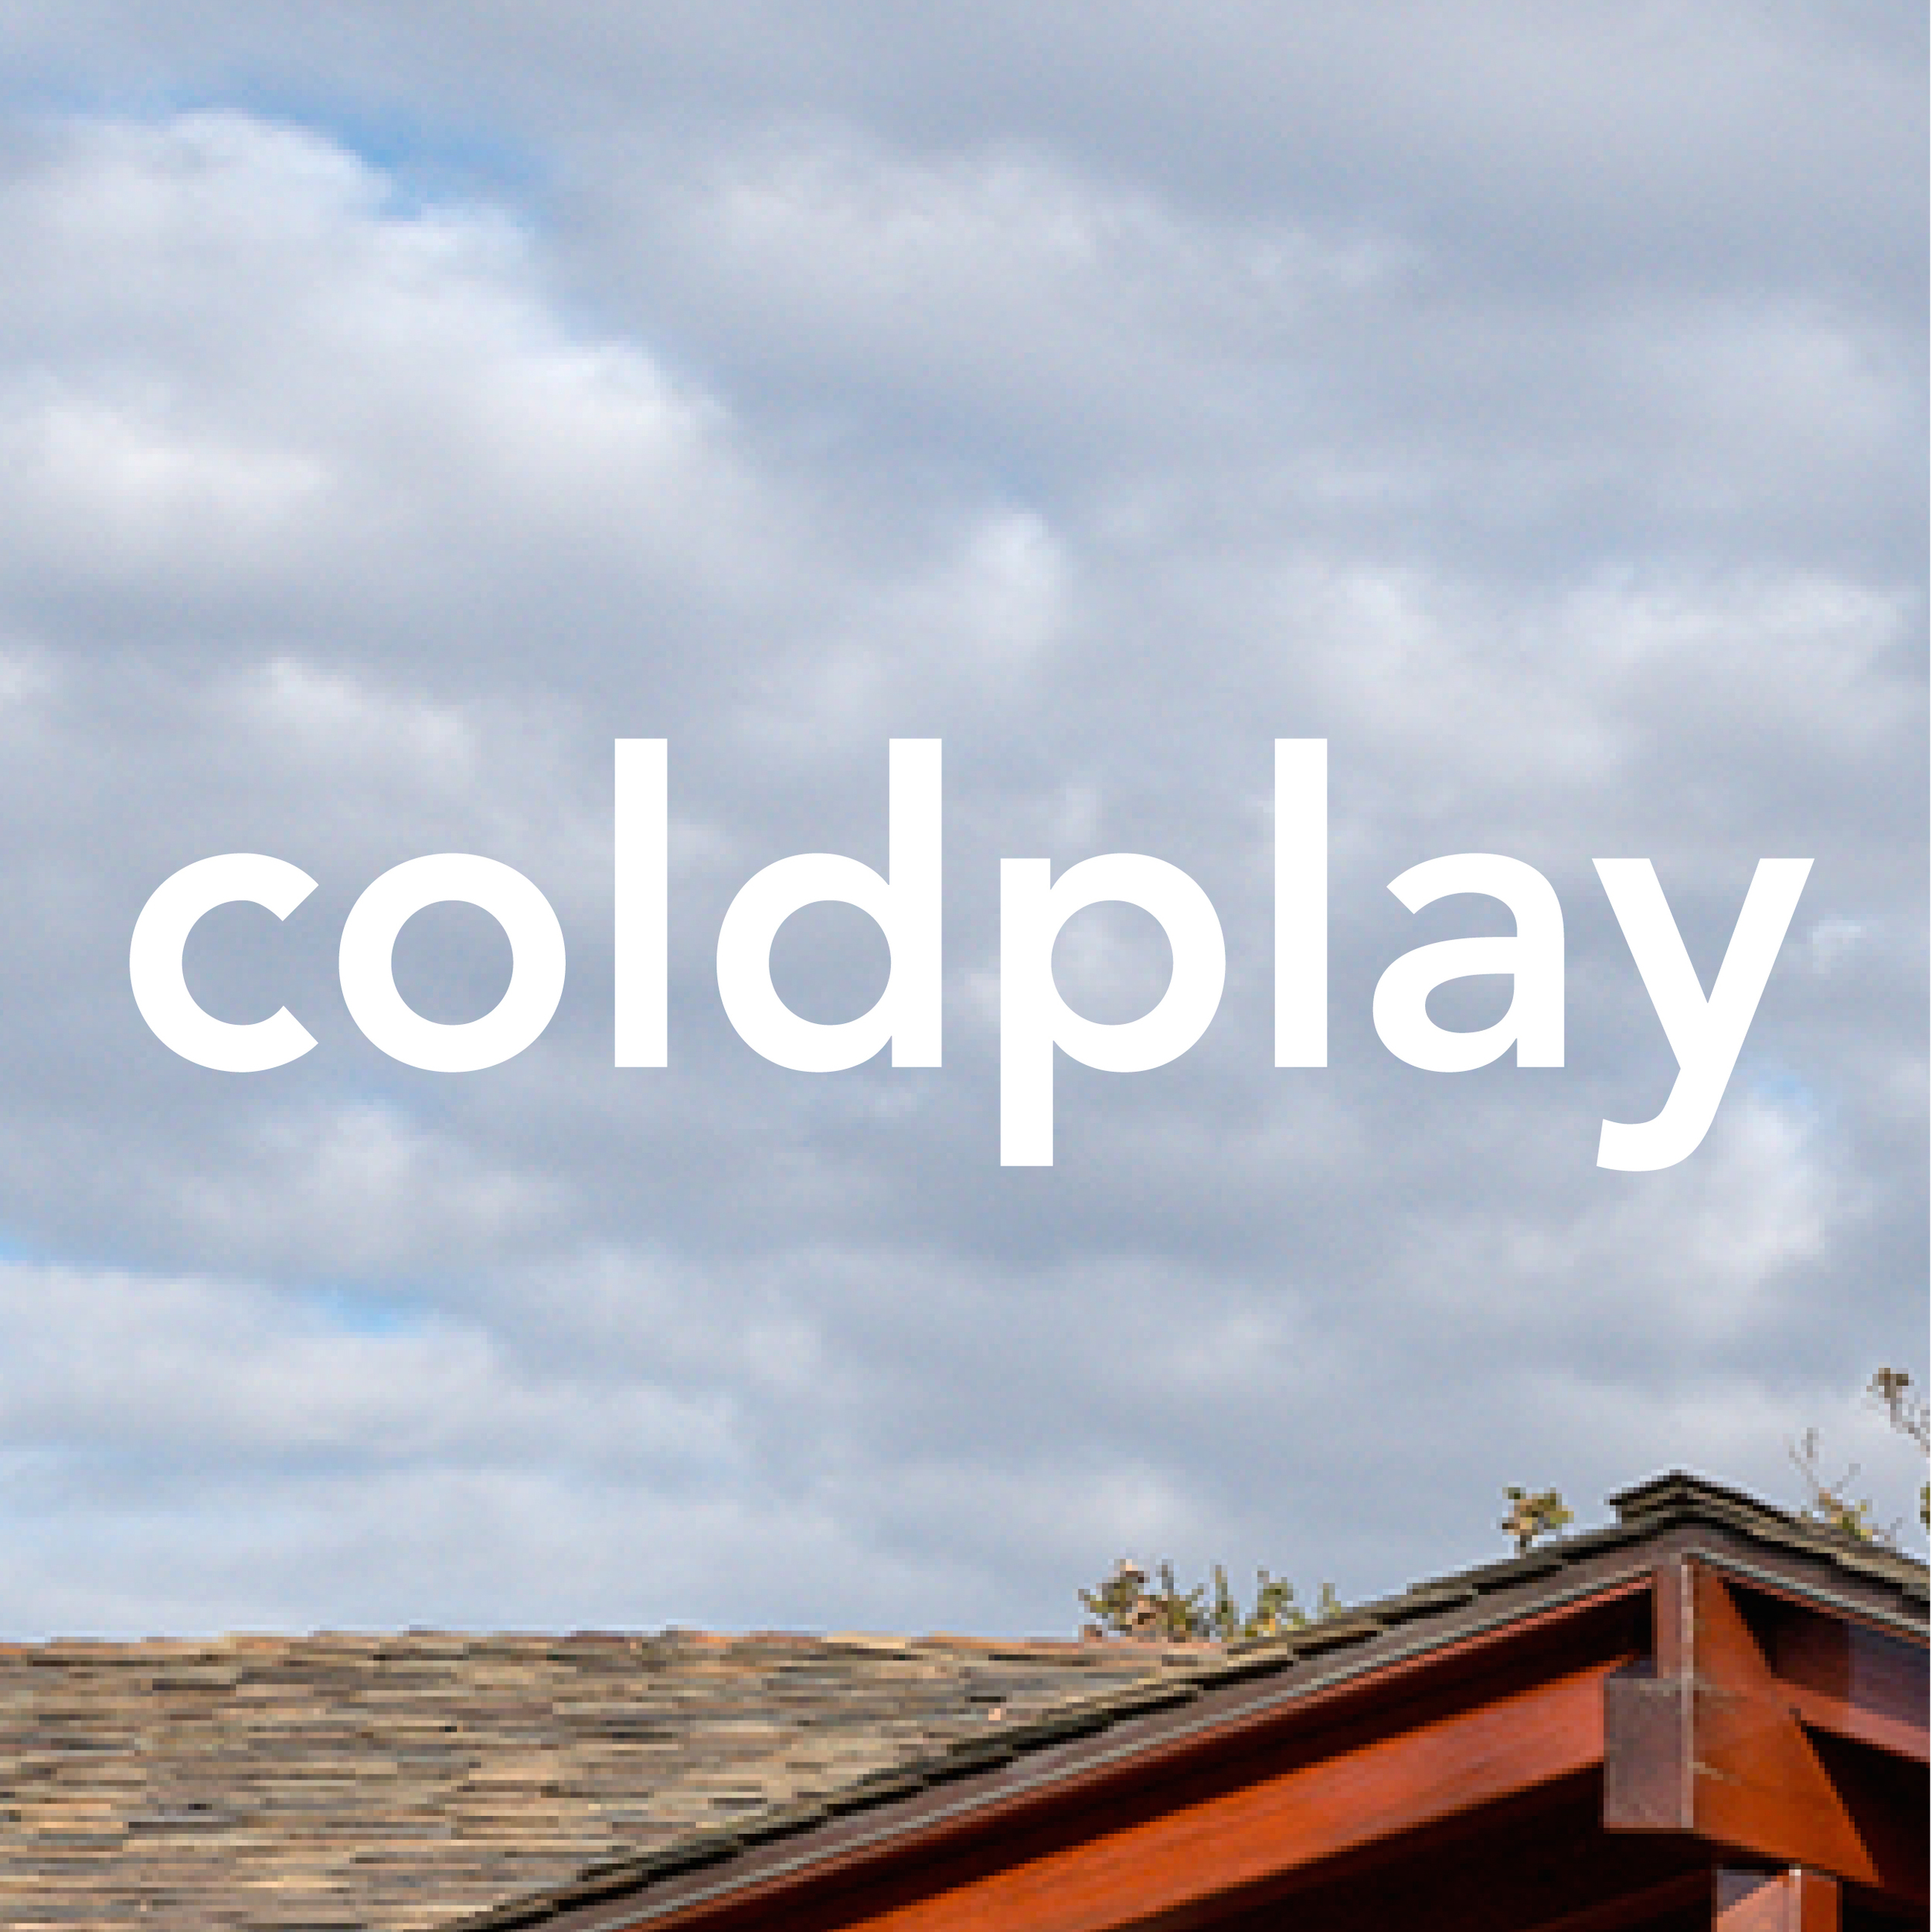 coldplay woodshed recording studio malibu ca